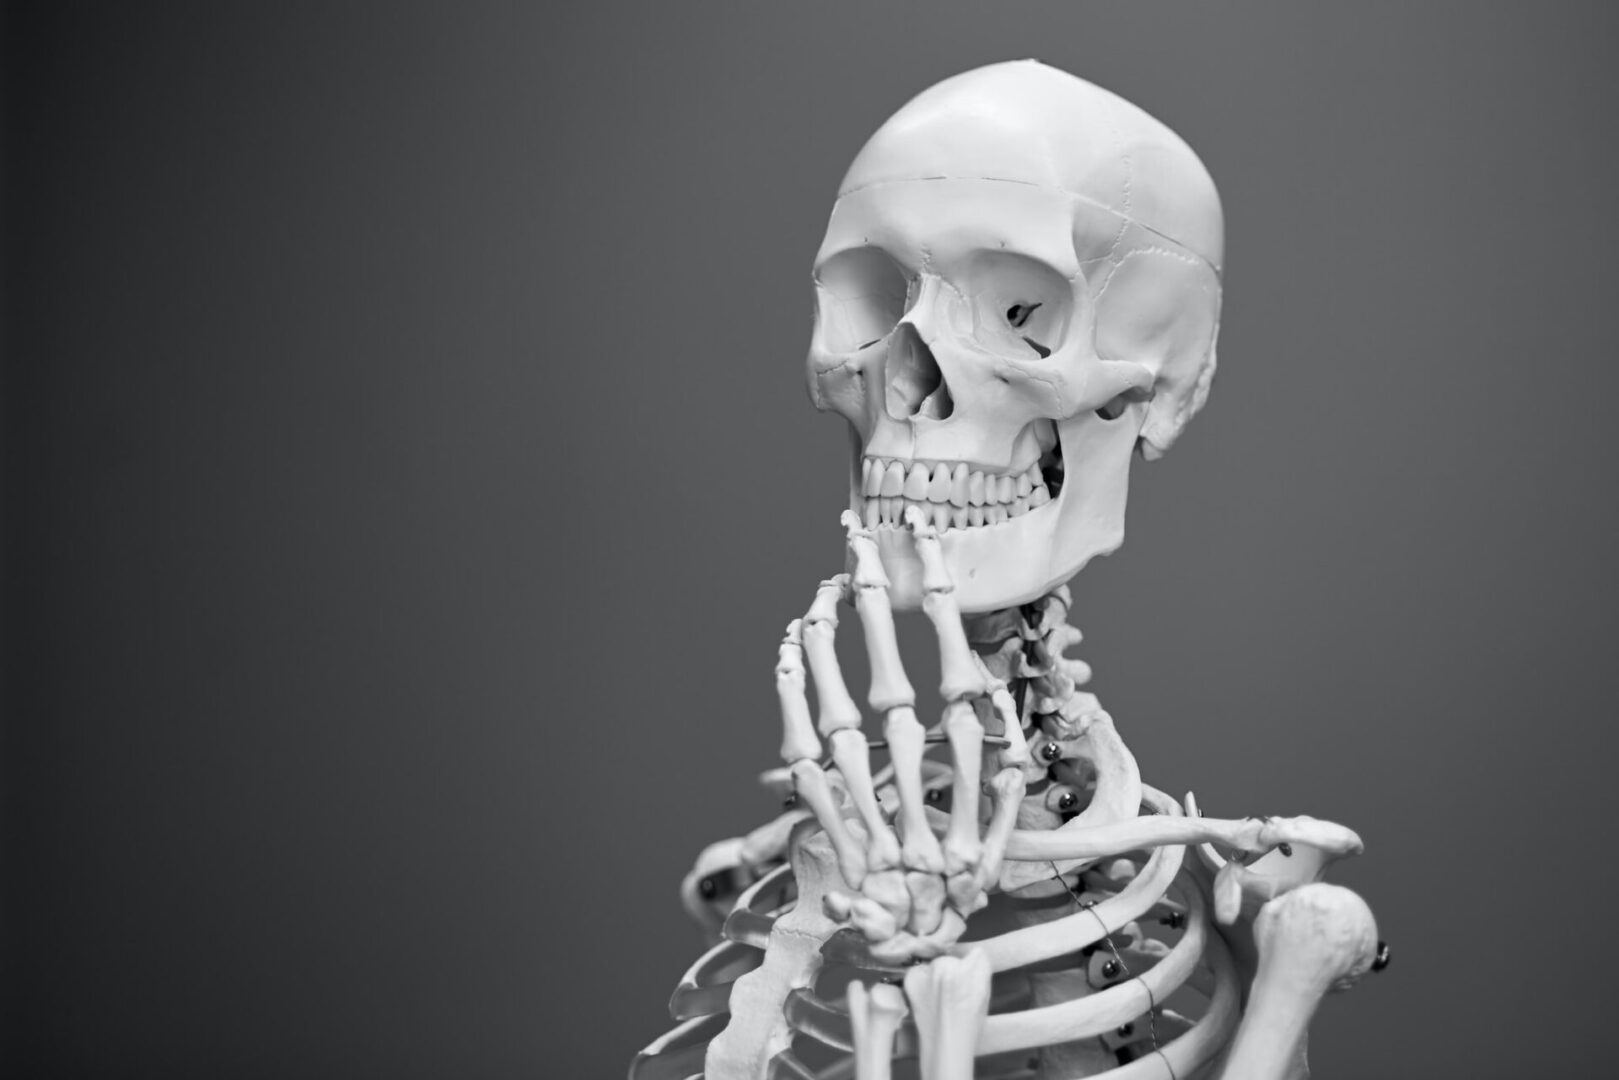 Skeleton with hand in a ponderous pose